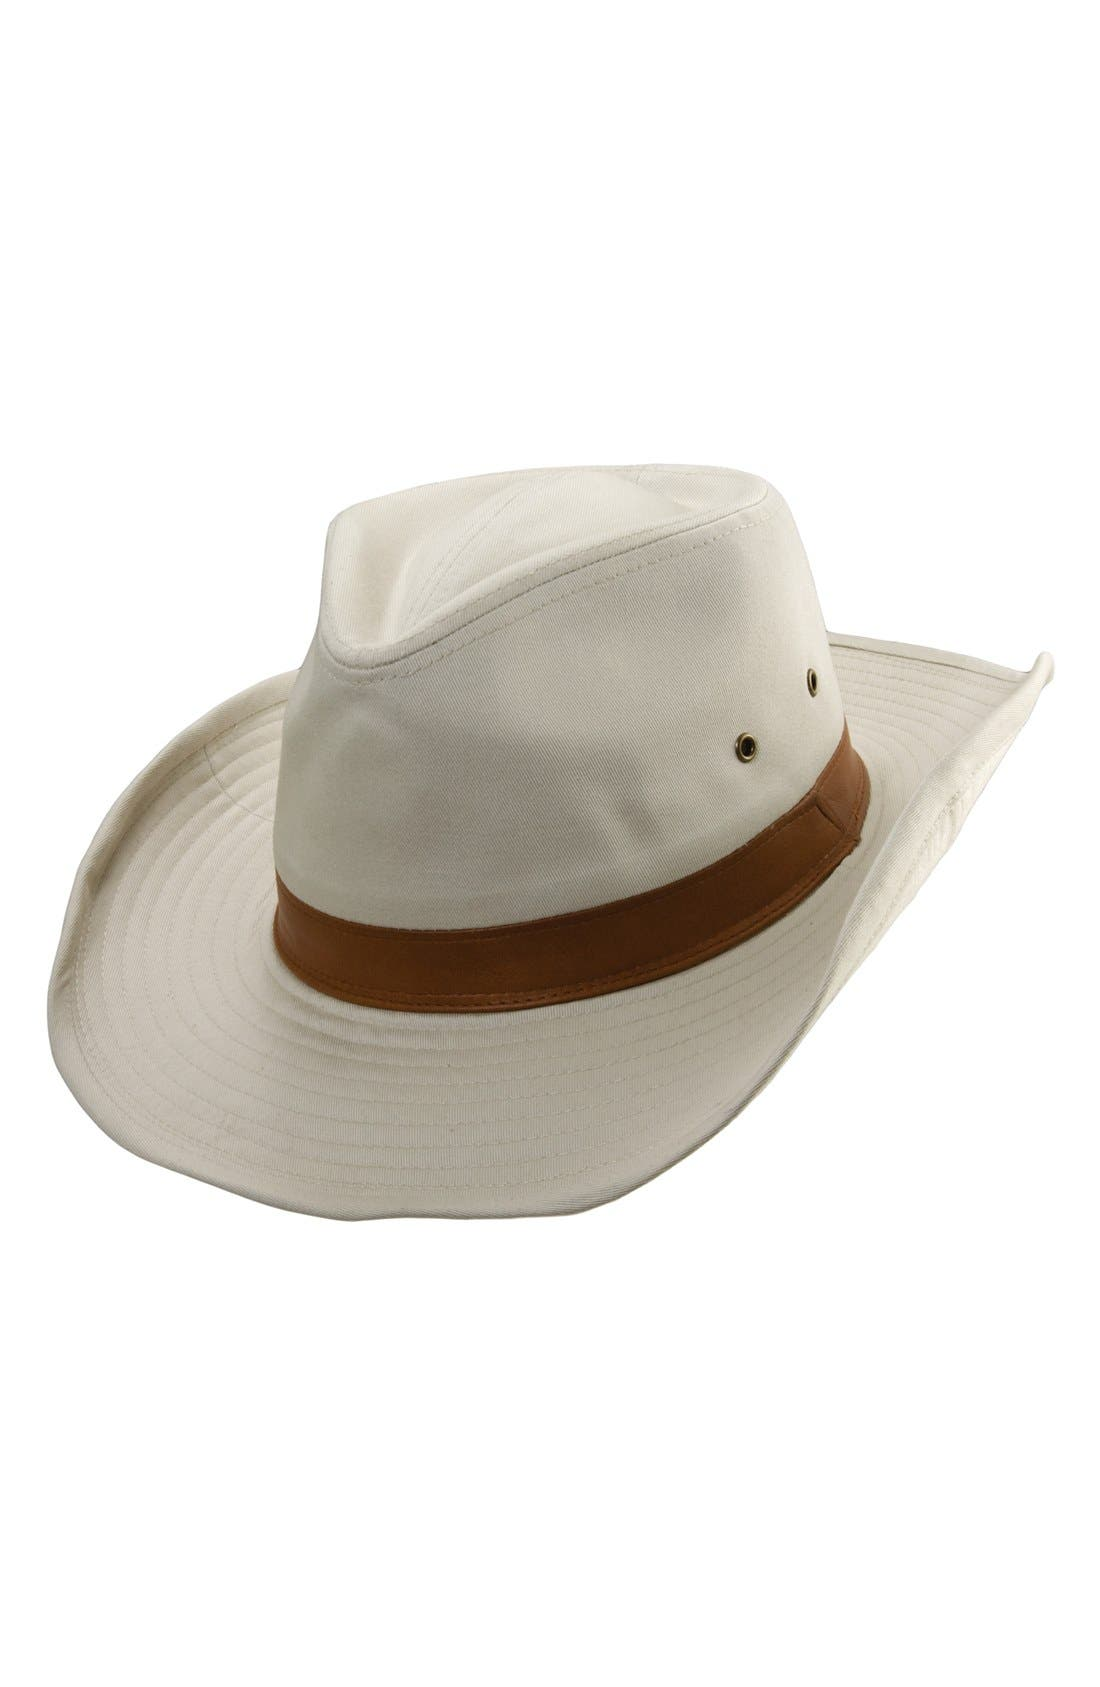 Cotton Outback Hat,                             Main thumbnail 1, color,                             Putty